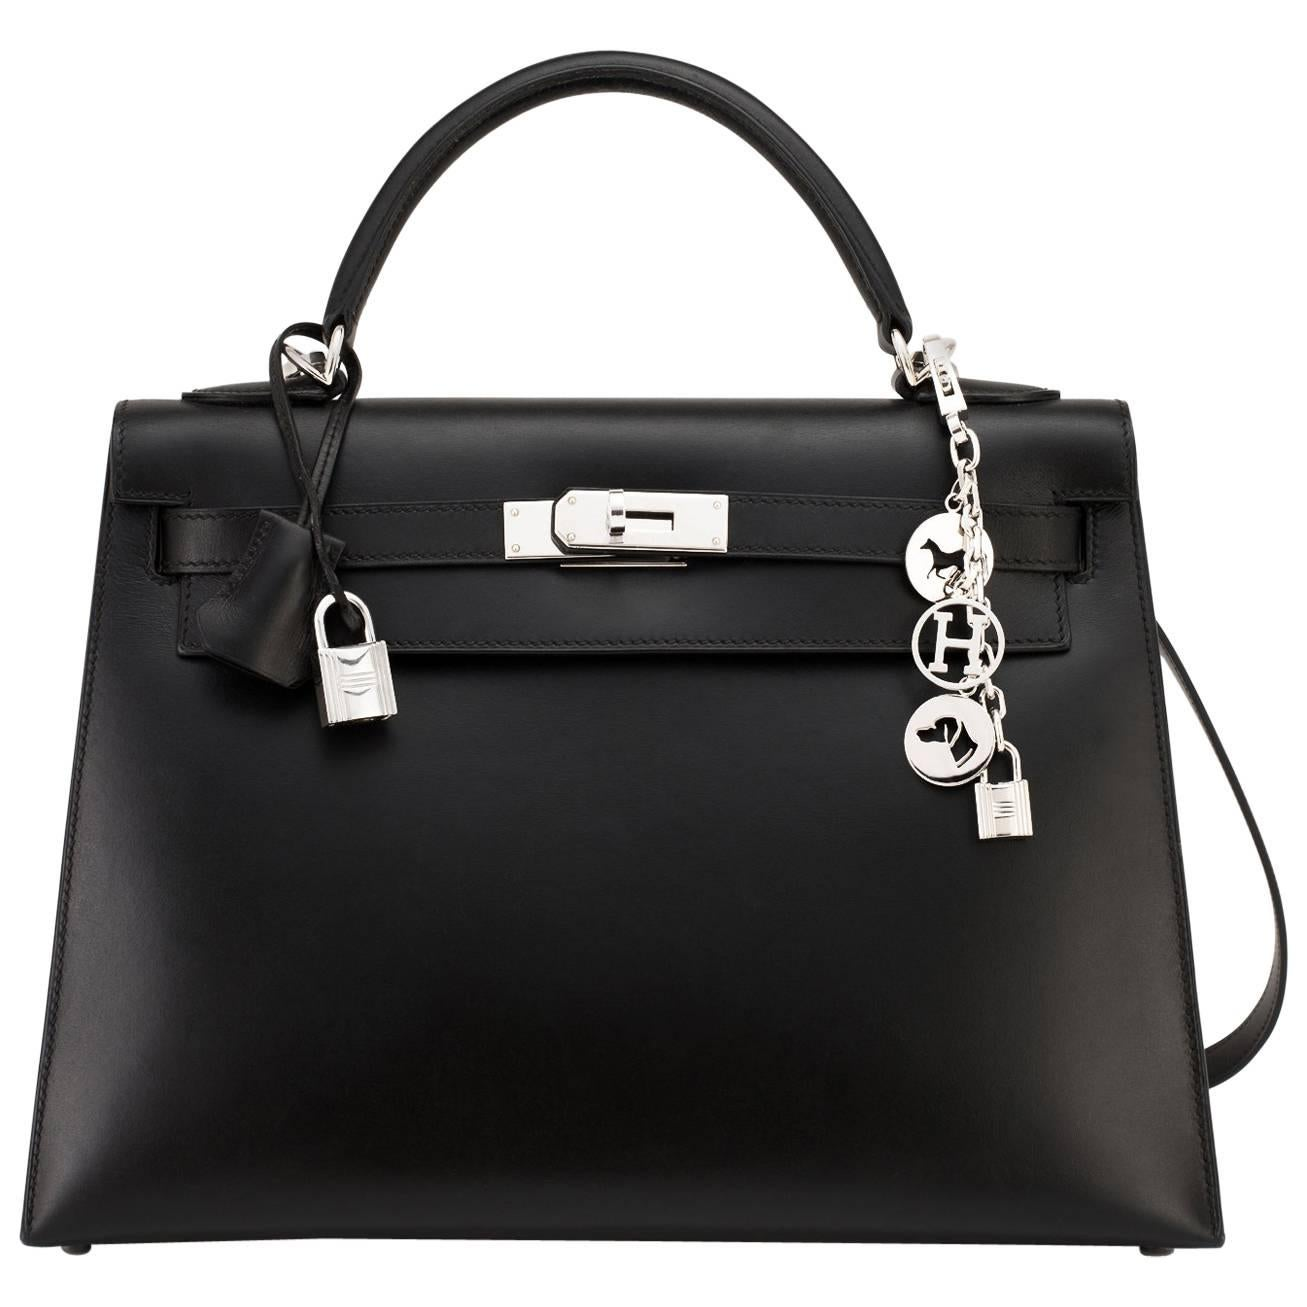 Hermes Black Box Kelly 32cm Shoulder Bag Palladium Hardware